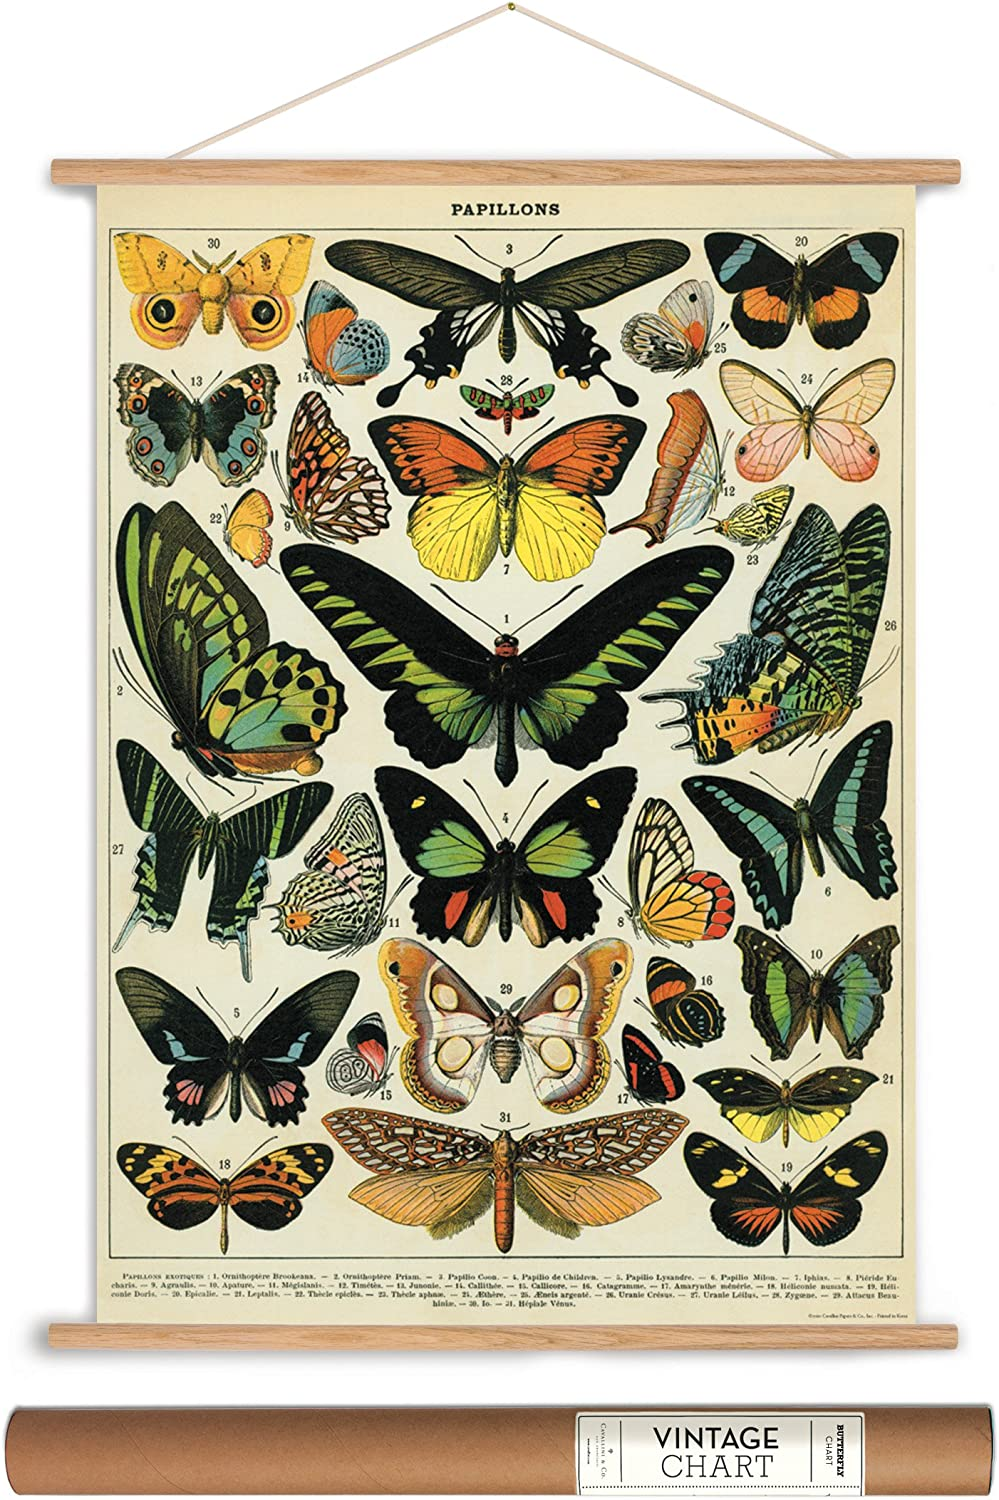 Amazon.com: Cavallini Papers Mariposas estilo clásico ...